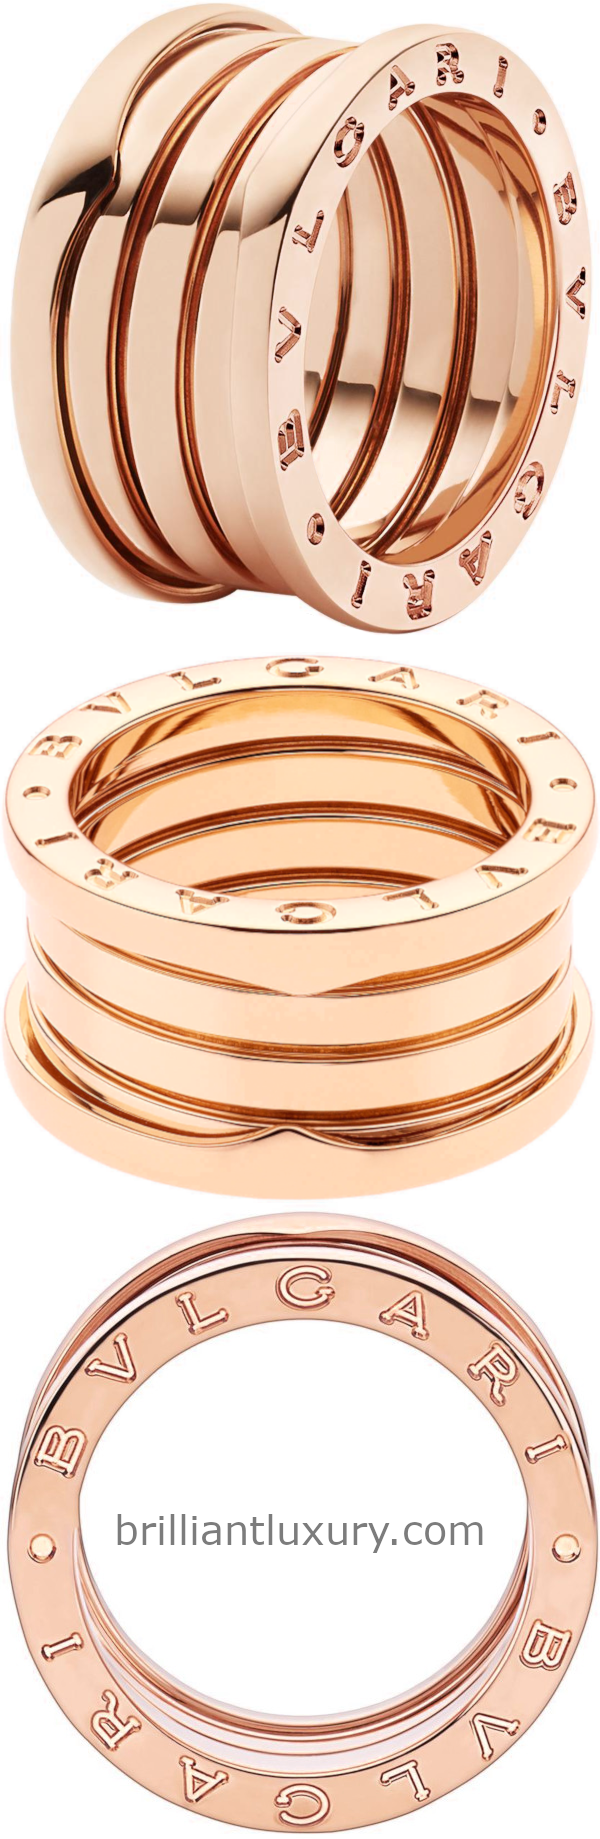 Bvlgari B.Zero1 four-band ring in 18kt rose gold